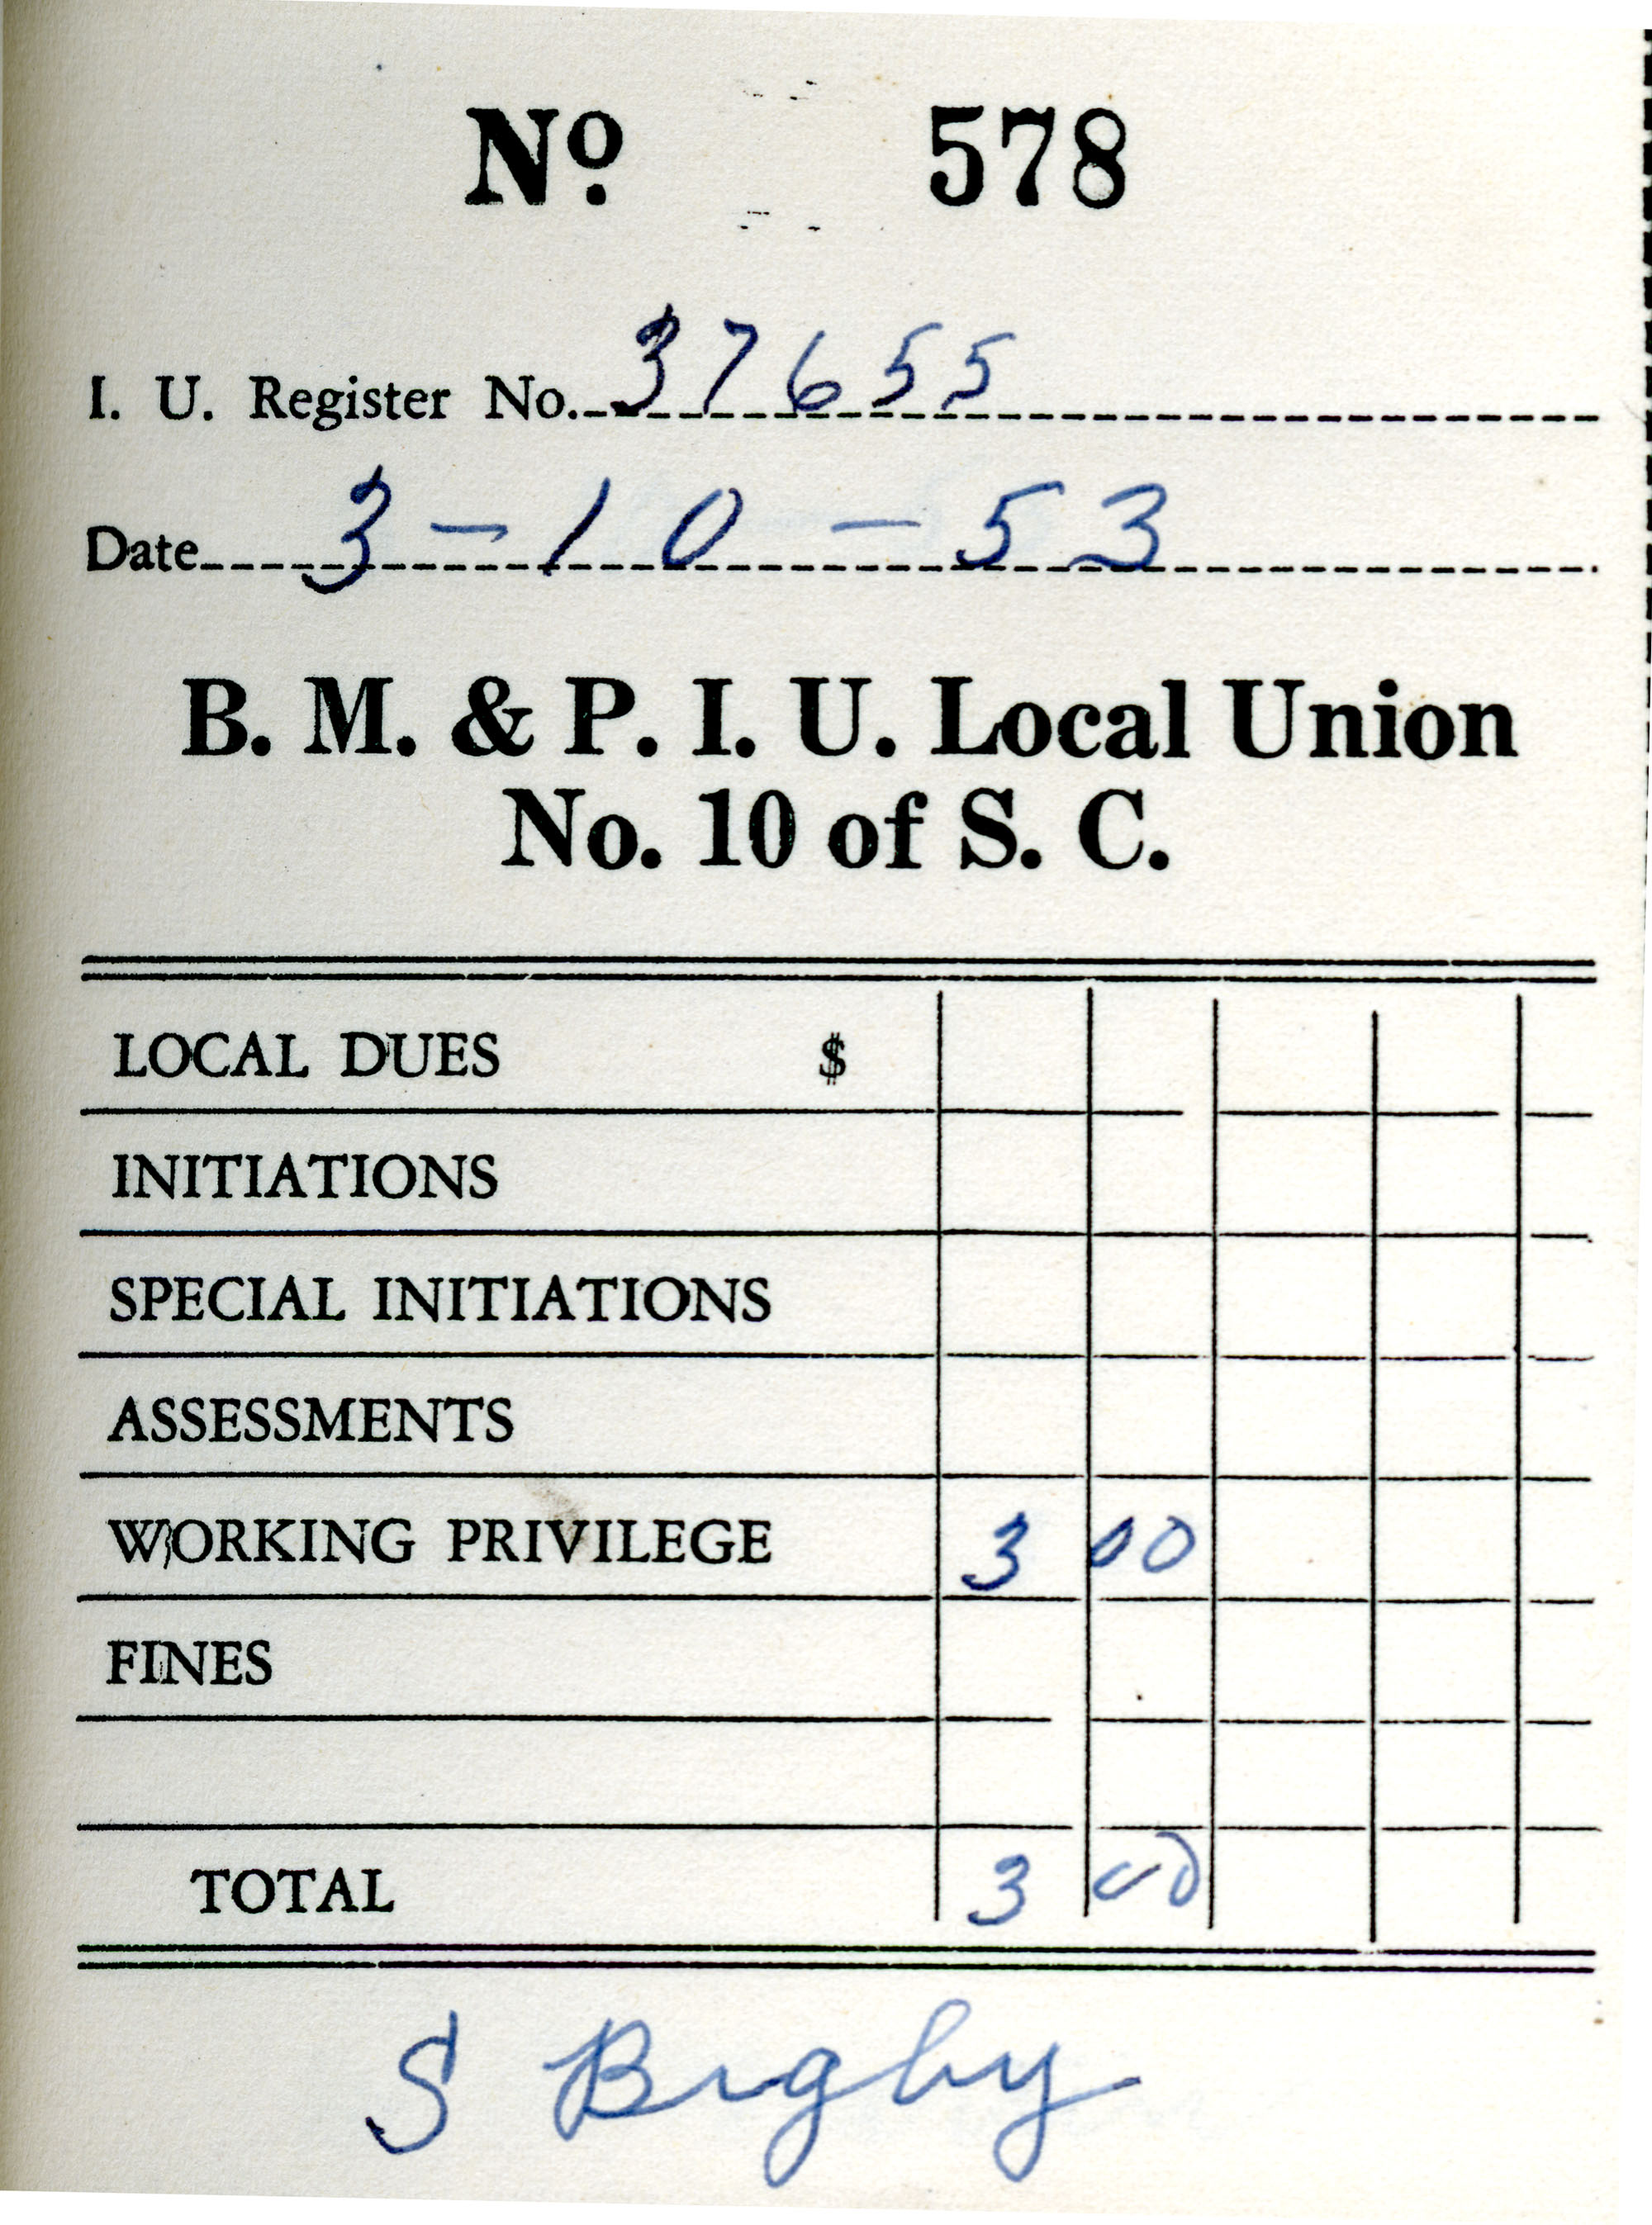 Receipt Book 1, Page 28